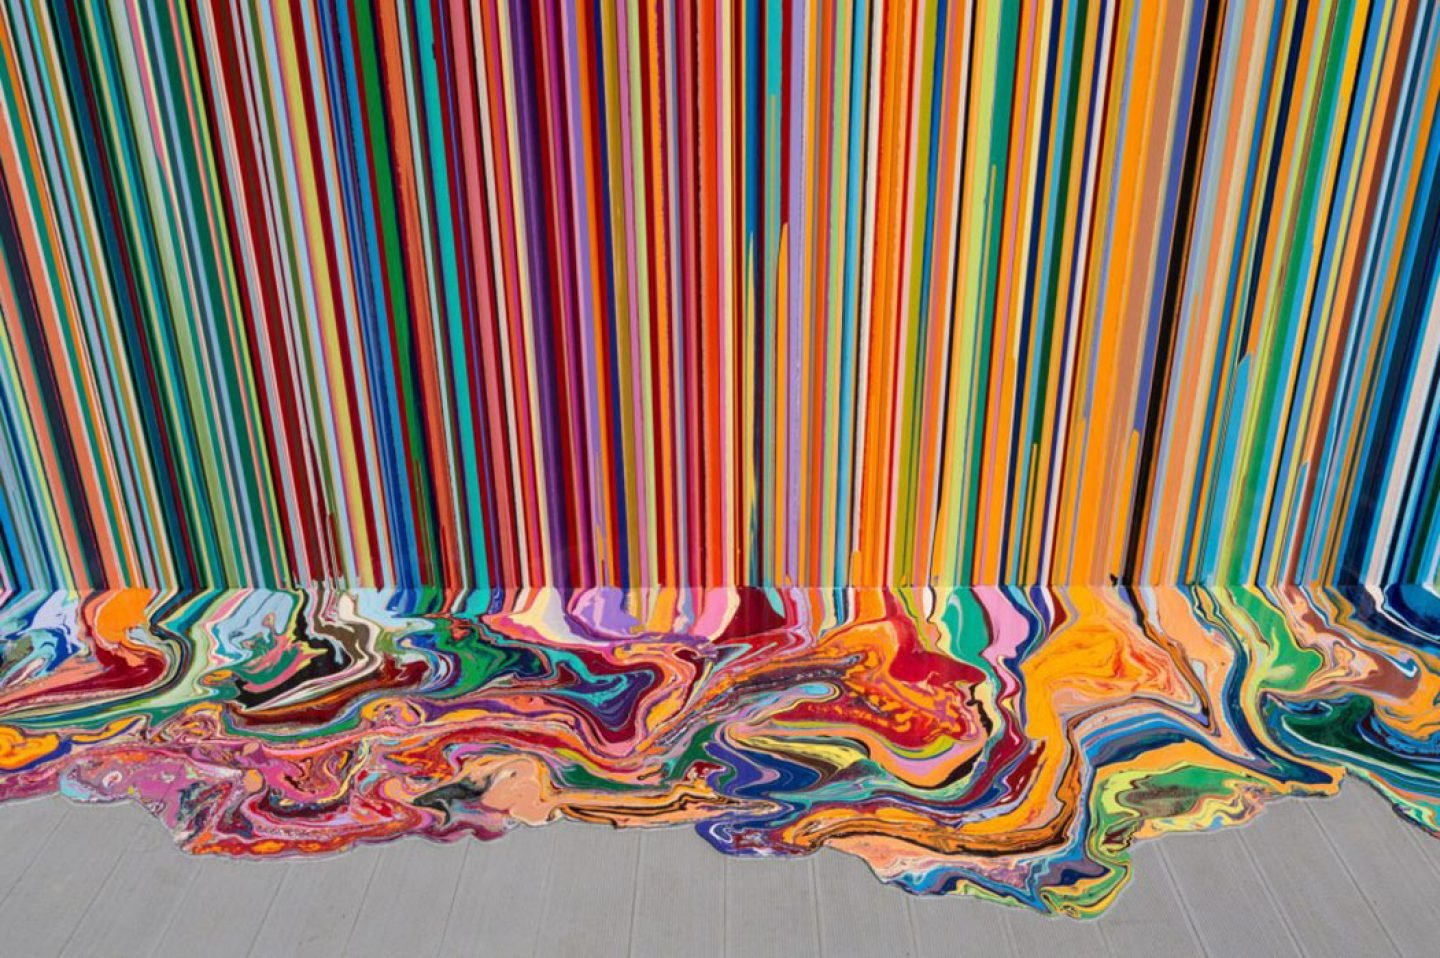 iGNANT_Art_Ian_Davenport_Puddle_Paintings_1